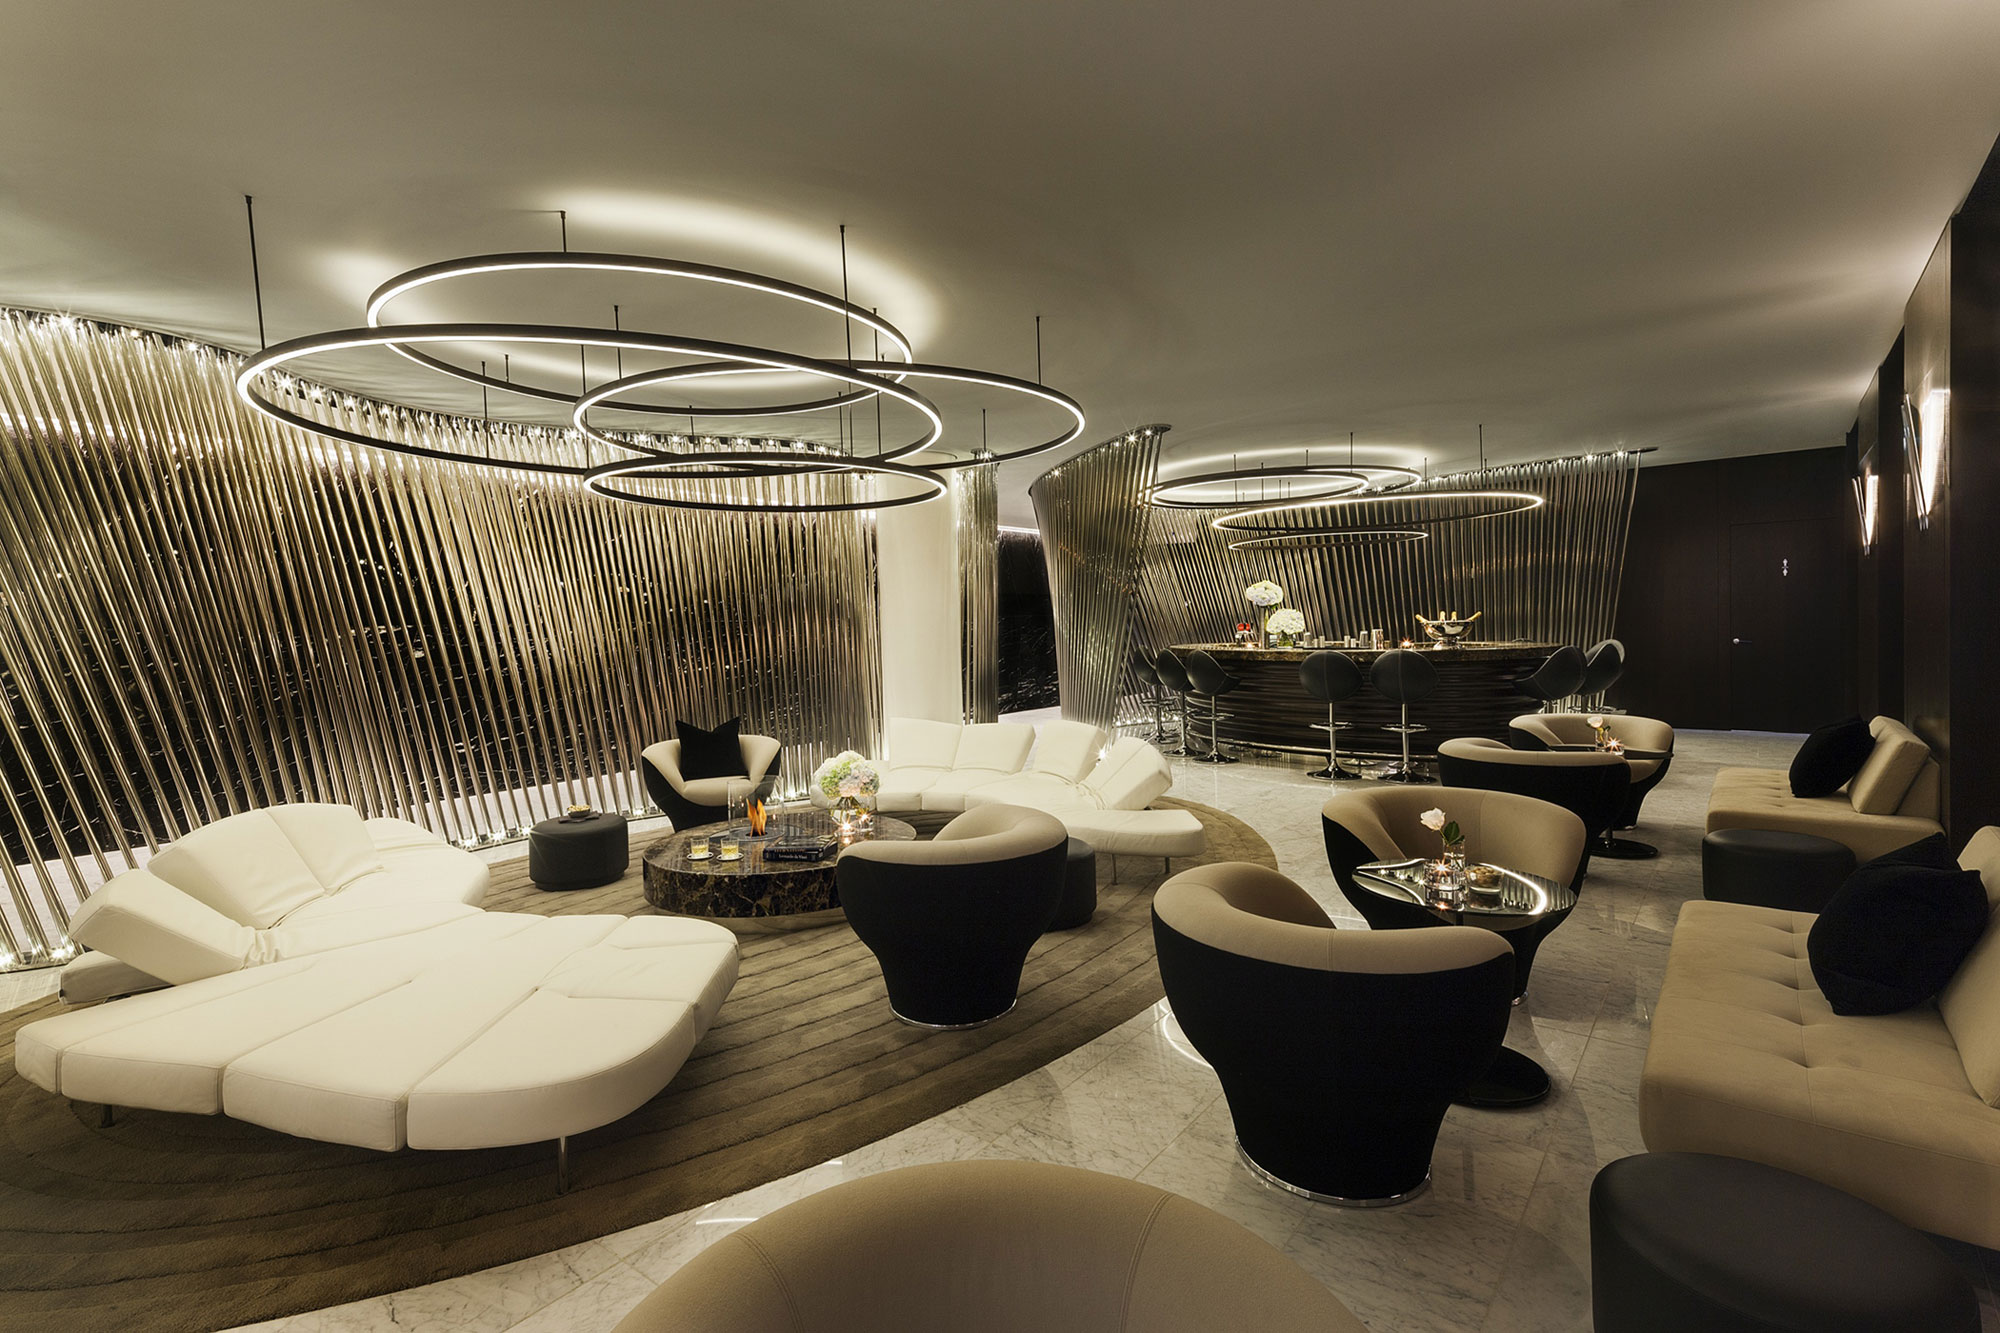 Trending luxury furniture archives home caprice your place for round edges luxury hotel furniture